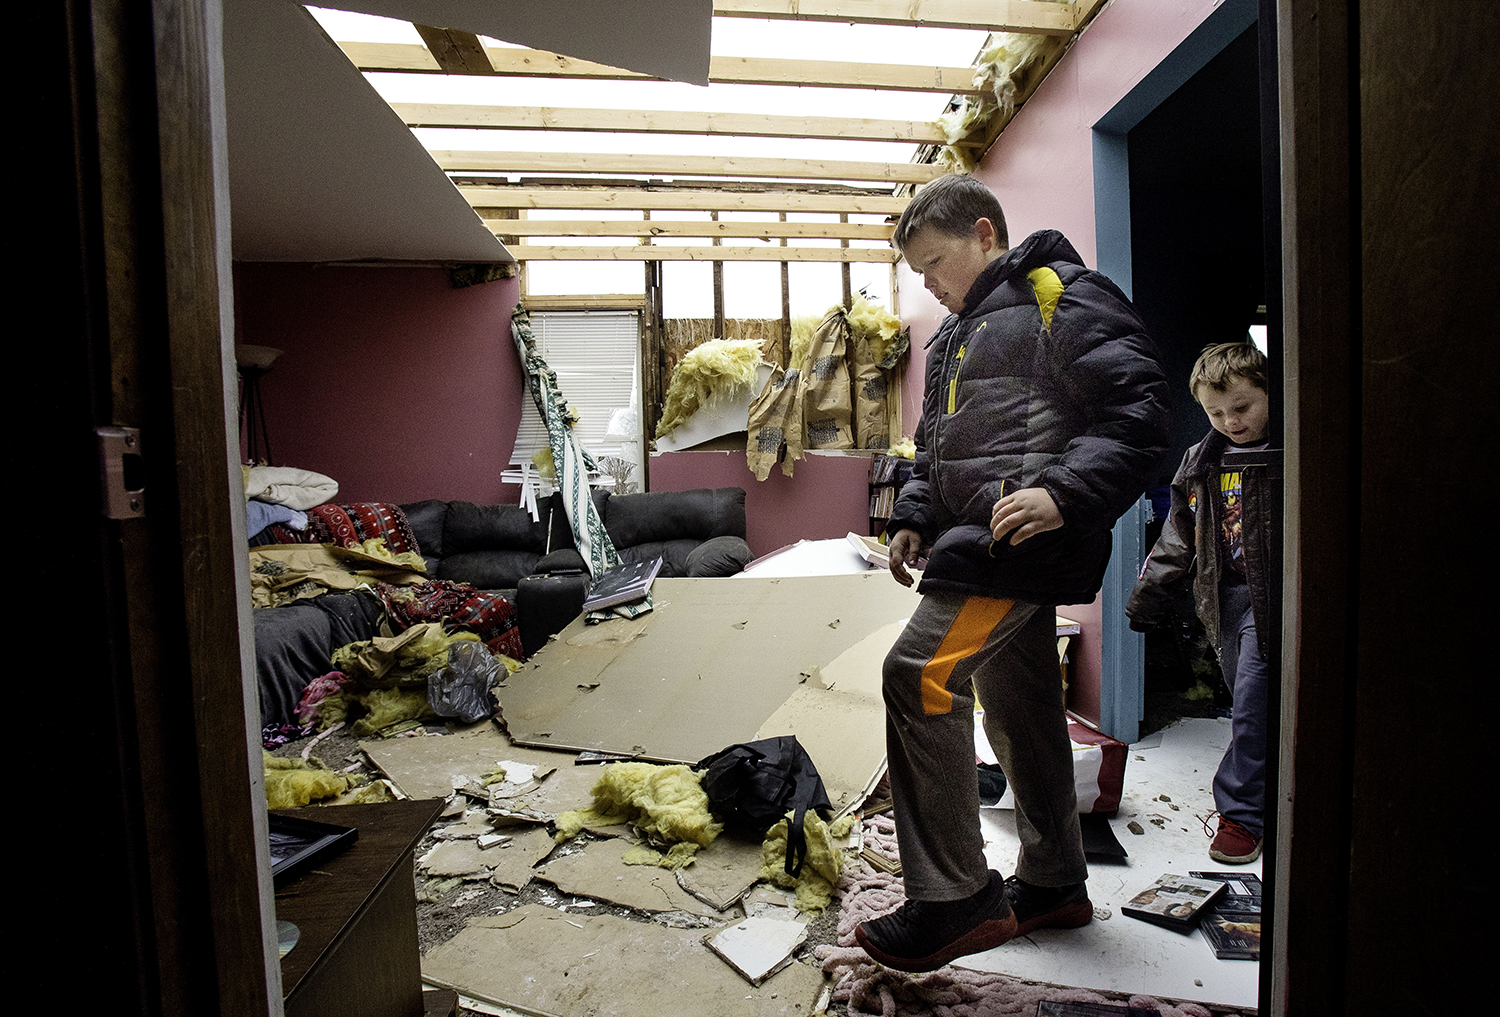 Tim Mayes and his cousin David Bowers step gingerly through the interior of Bowers' tornado damaged Taylorville home Sunday, Dec. 2, 2018. The roof of their home was completely torn off by the storm. [Ted Schurter/The State Journal-Register]